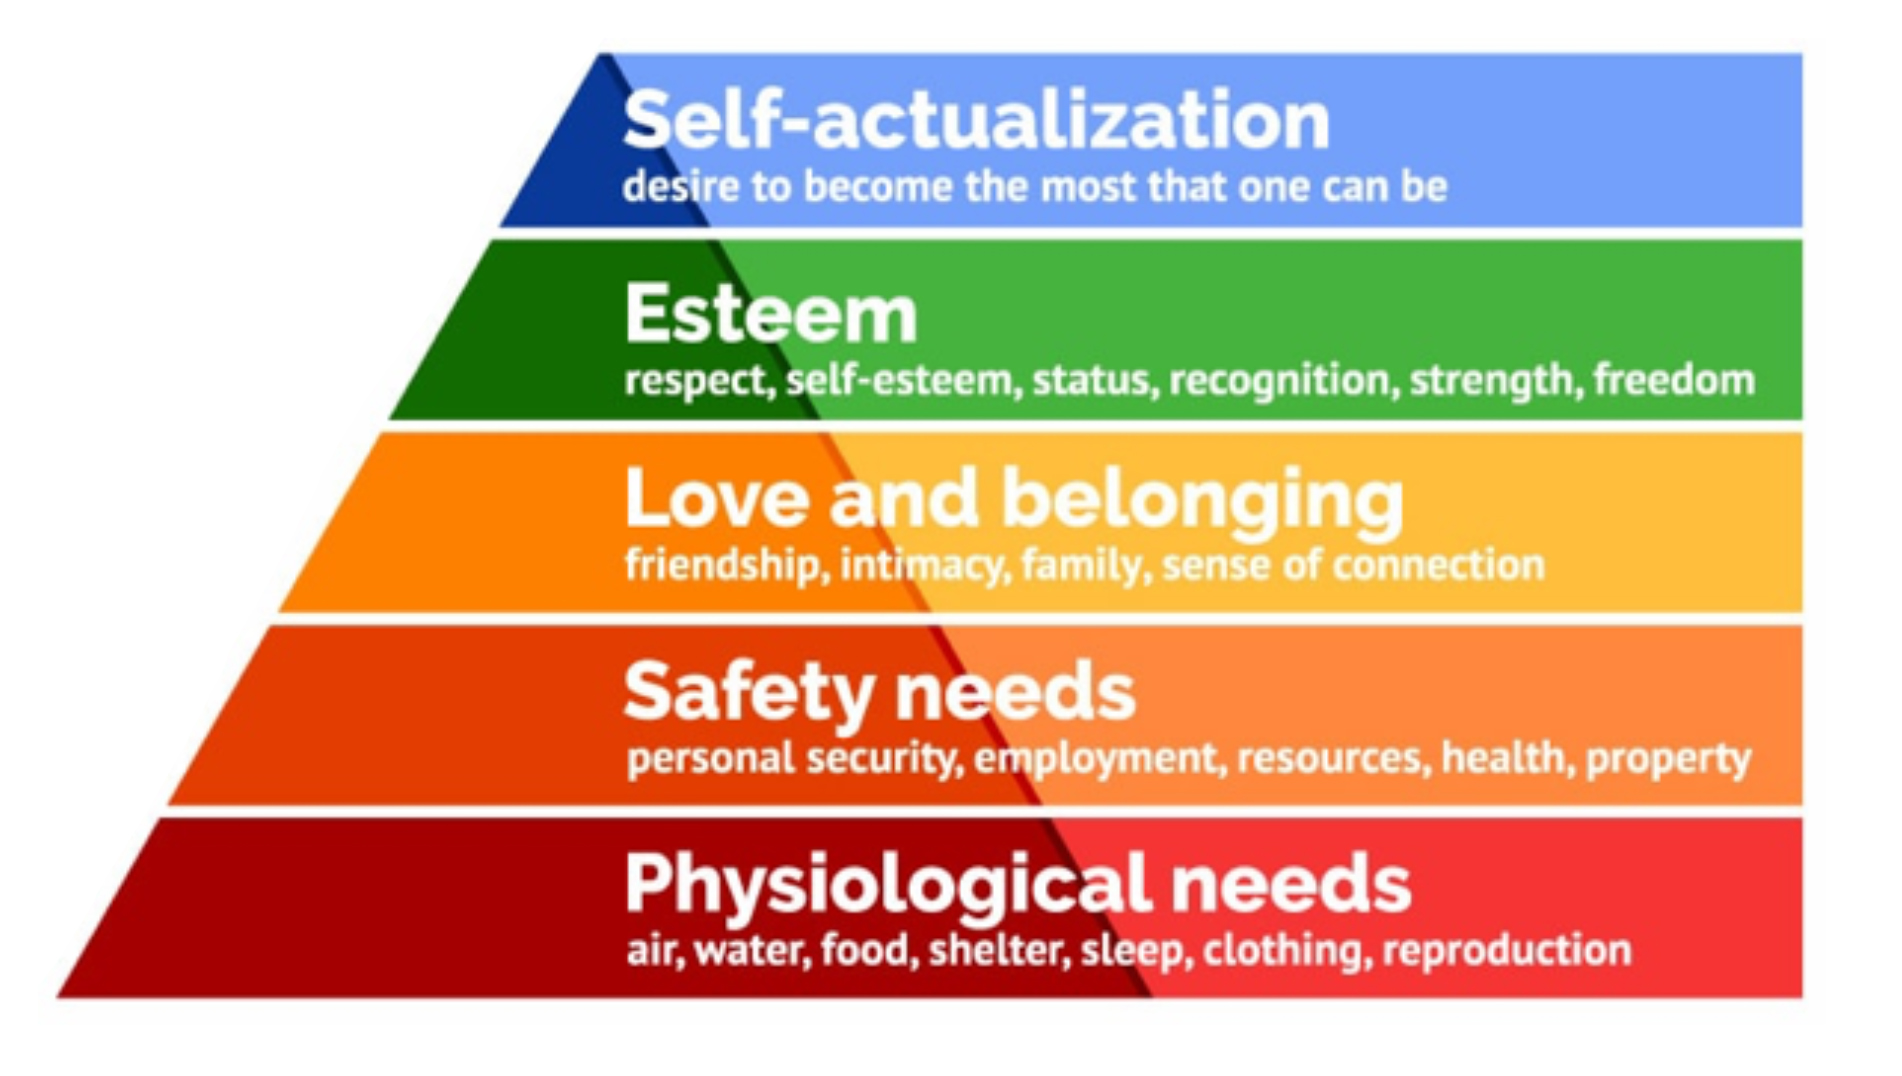 Abraham Maslow 5 level hierarchy of human needs